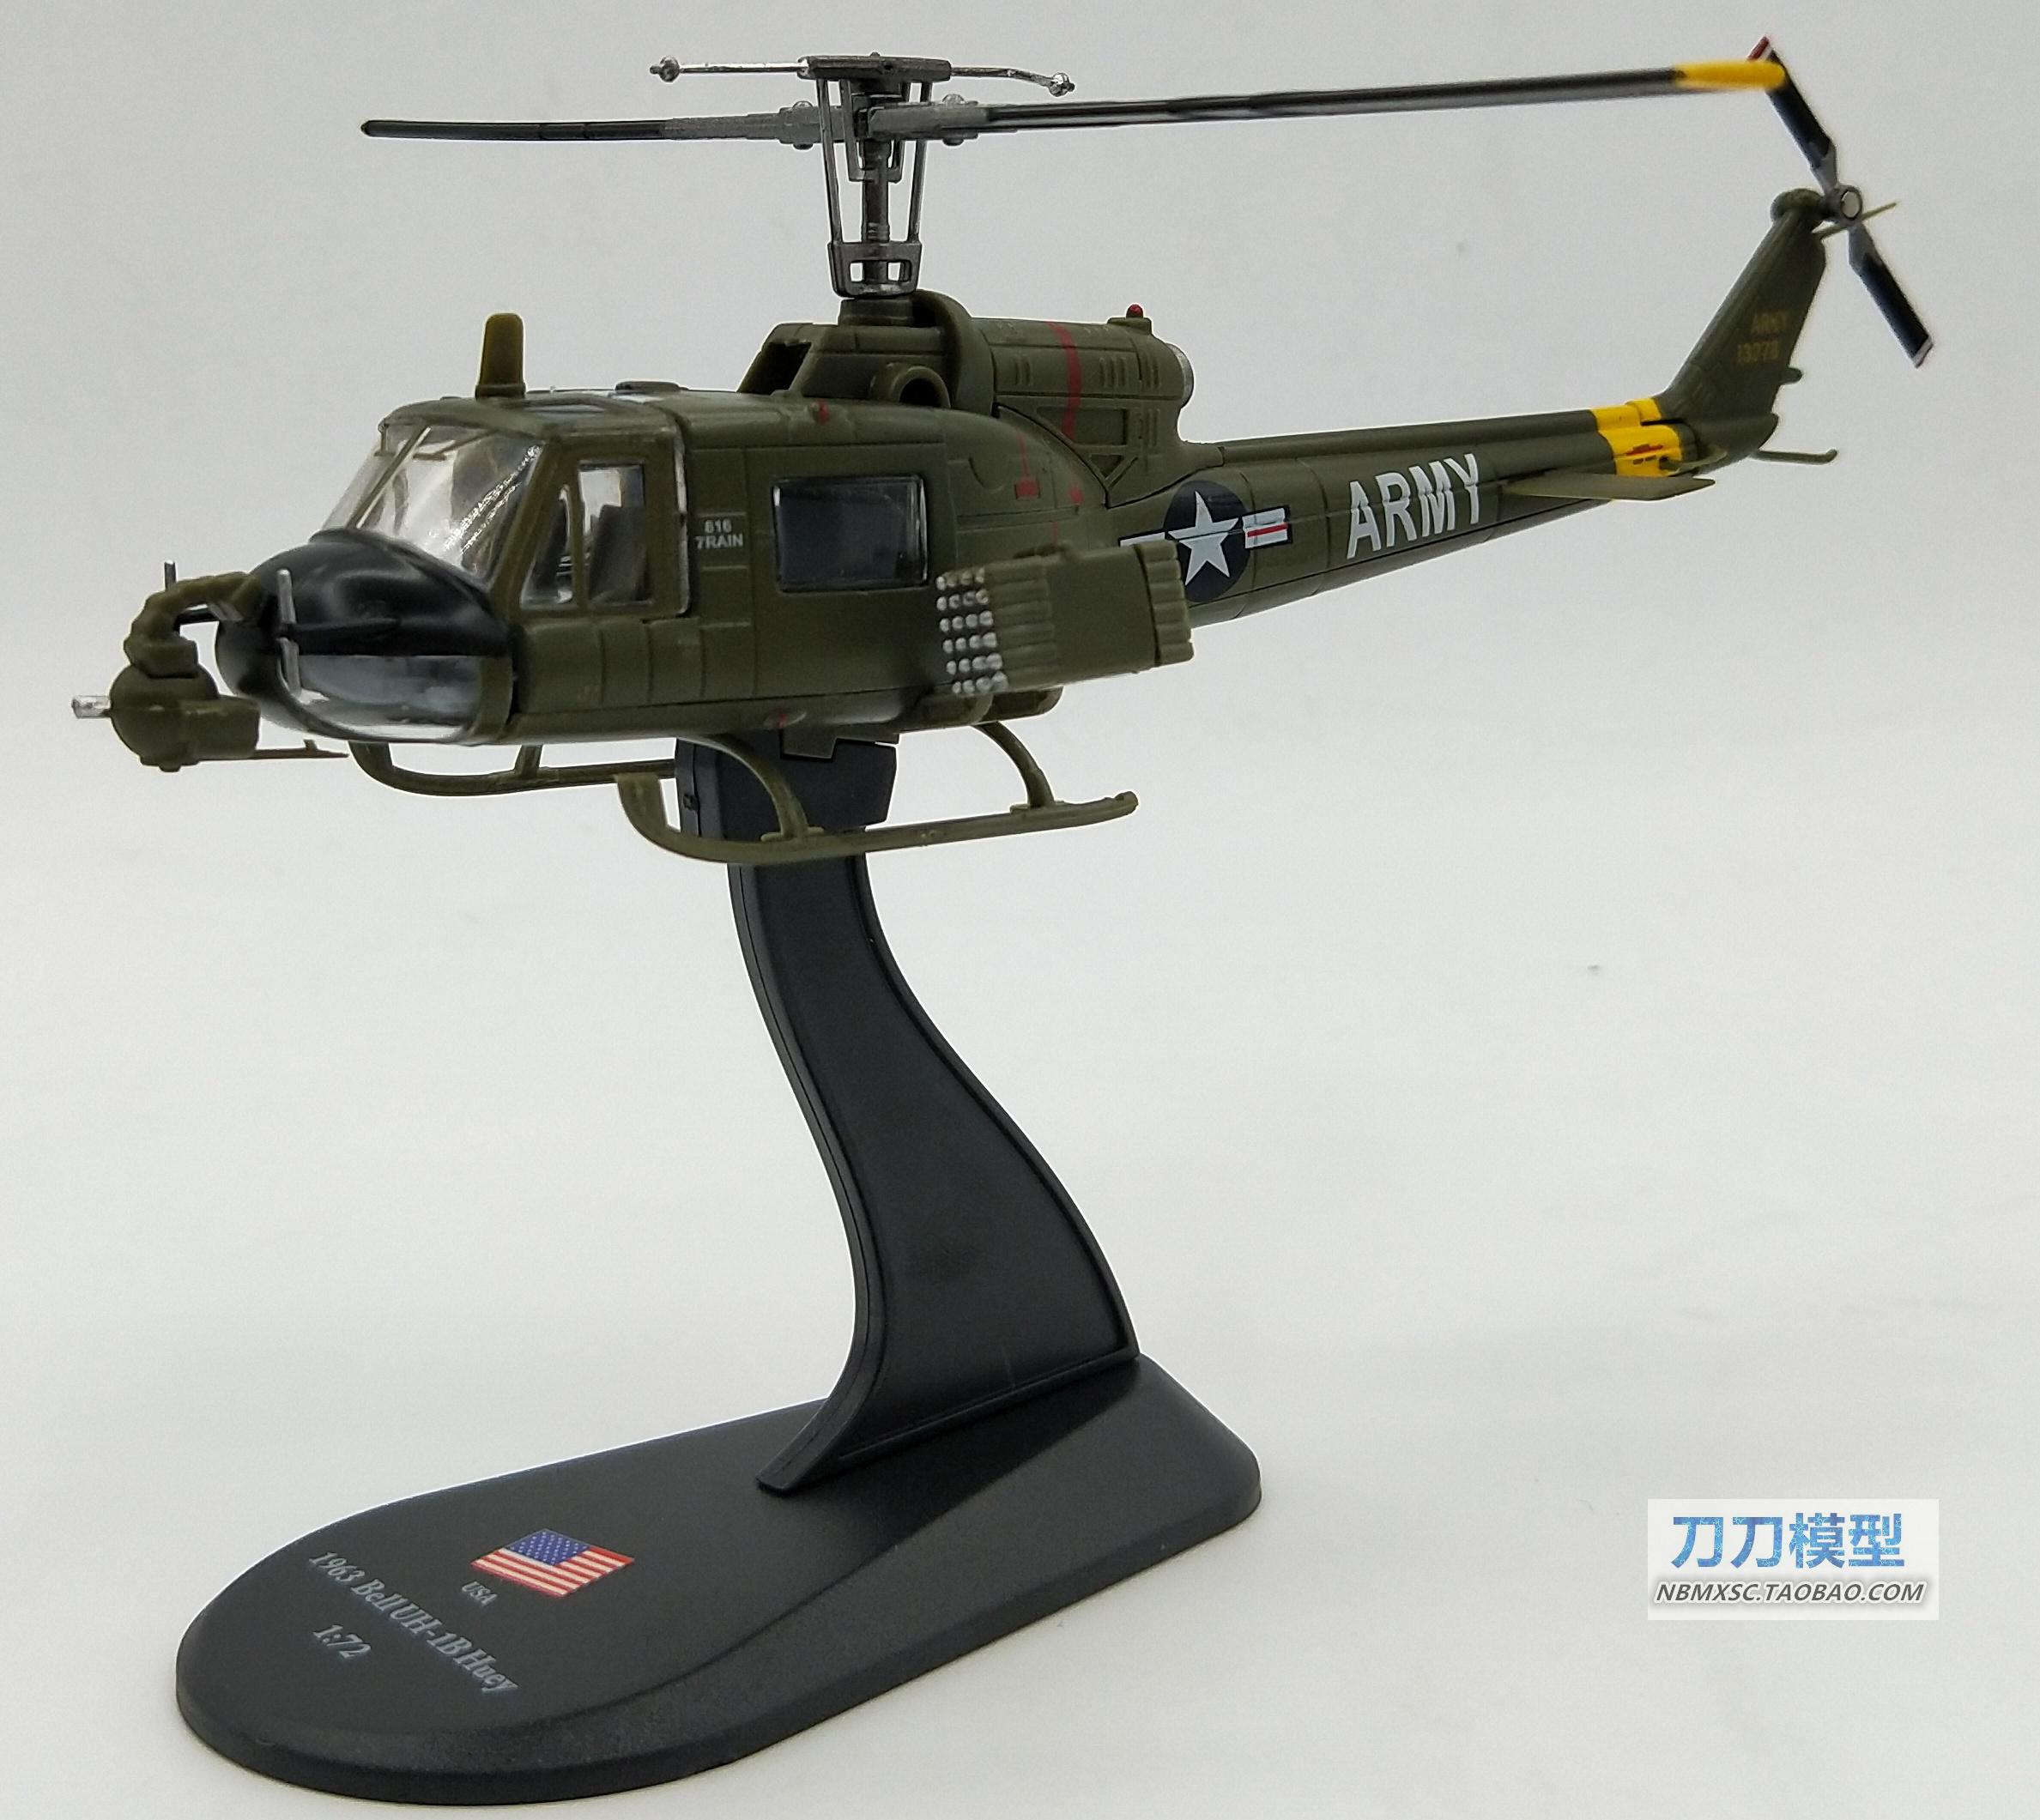 AMER 1/72 Scale Military Model Toys USA 1963 Bell UH-1B Huey Helicopter Diecast Metal Plane Model Toy For Gift/Collection тент green glade 1018